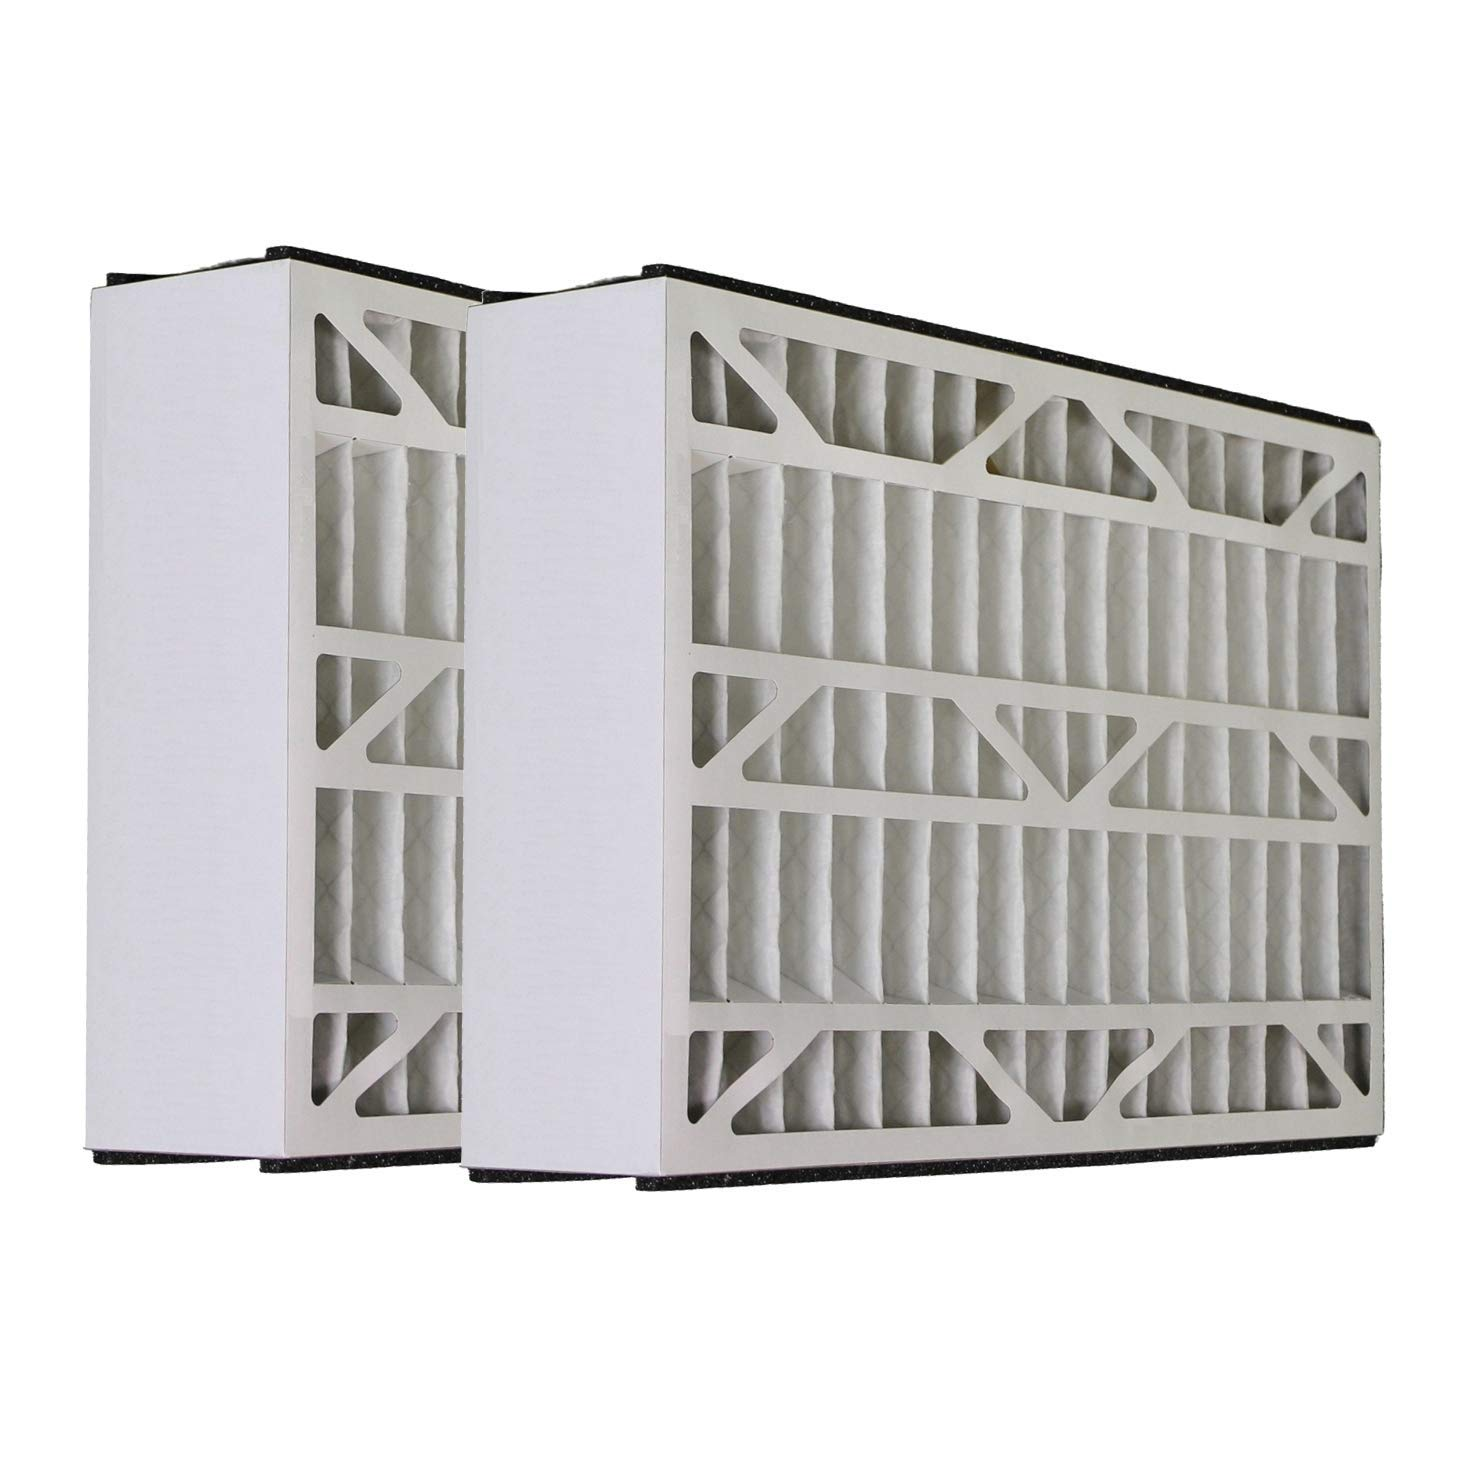 Tier1 Replacement for Lennox 20x25x5 Merv 8 X1152 Air Filter 2 Pack